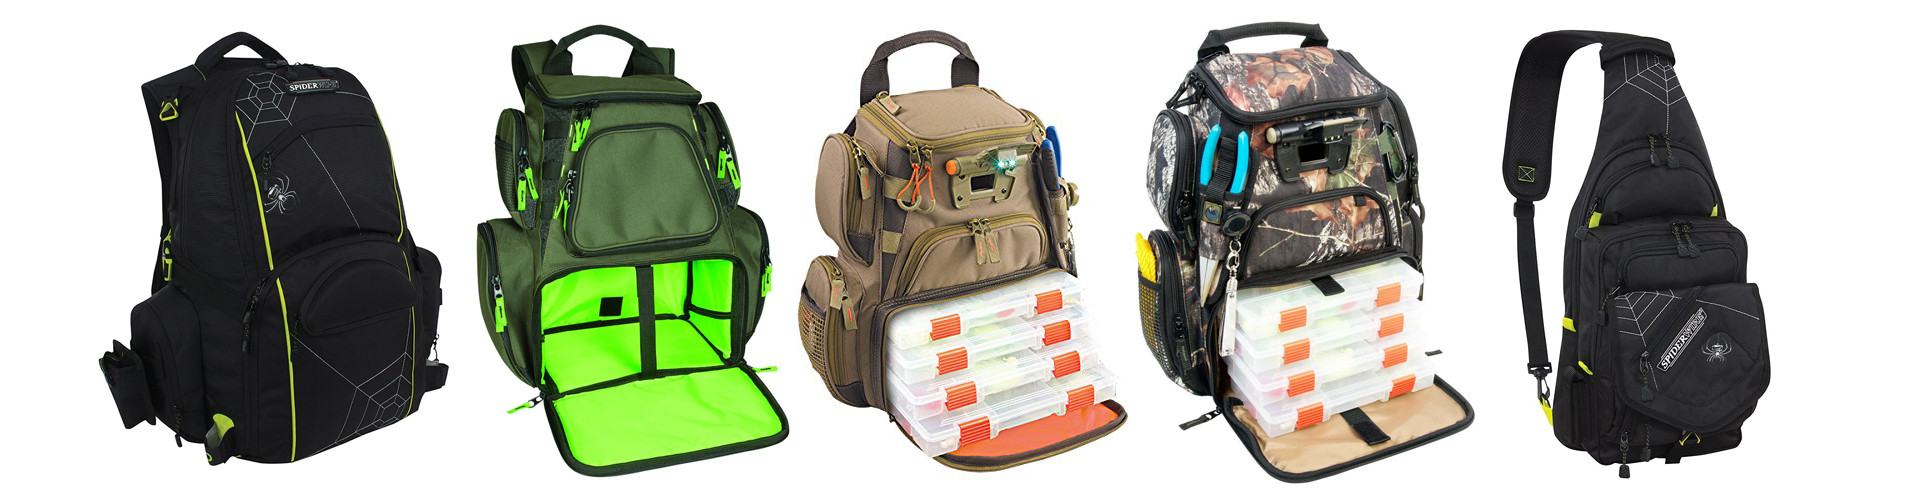 33c5935eb5af The Top 10 Best Rated Fishing Backpacks of 2019 - Buying Guide